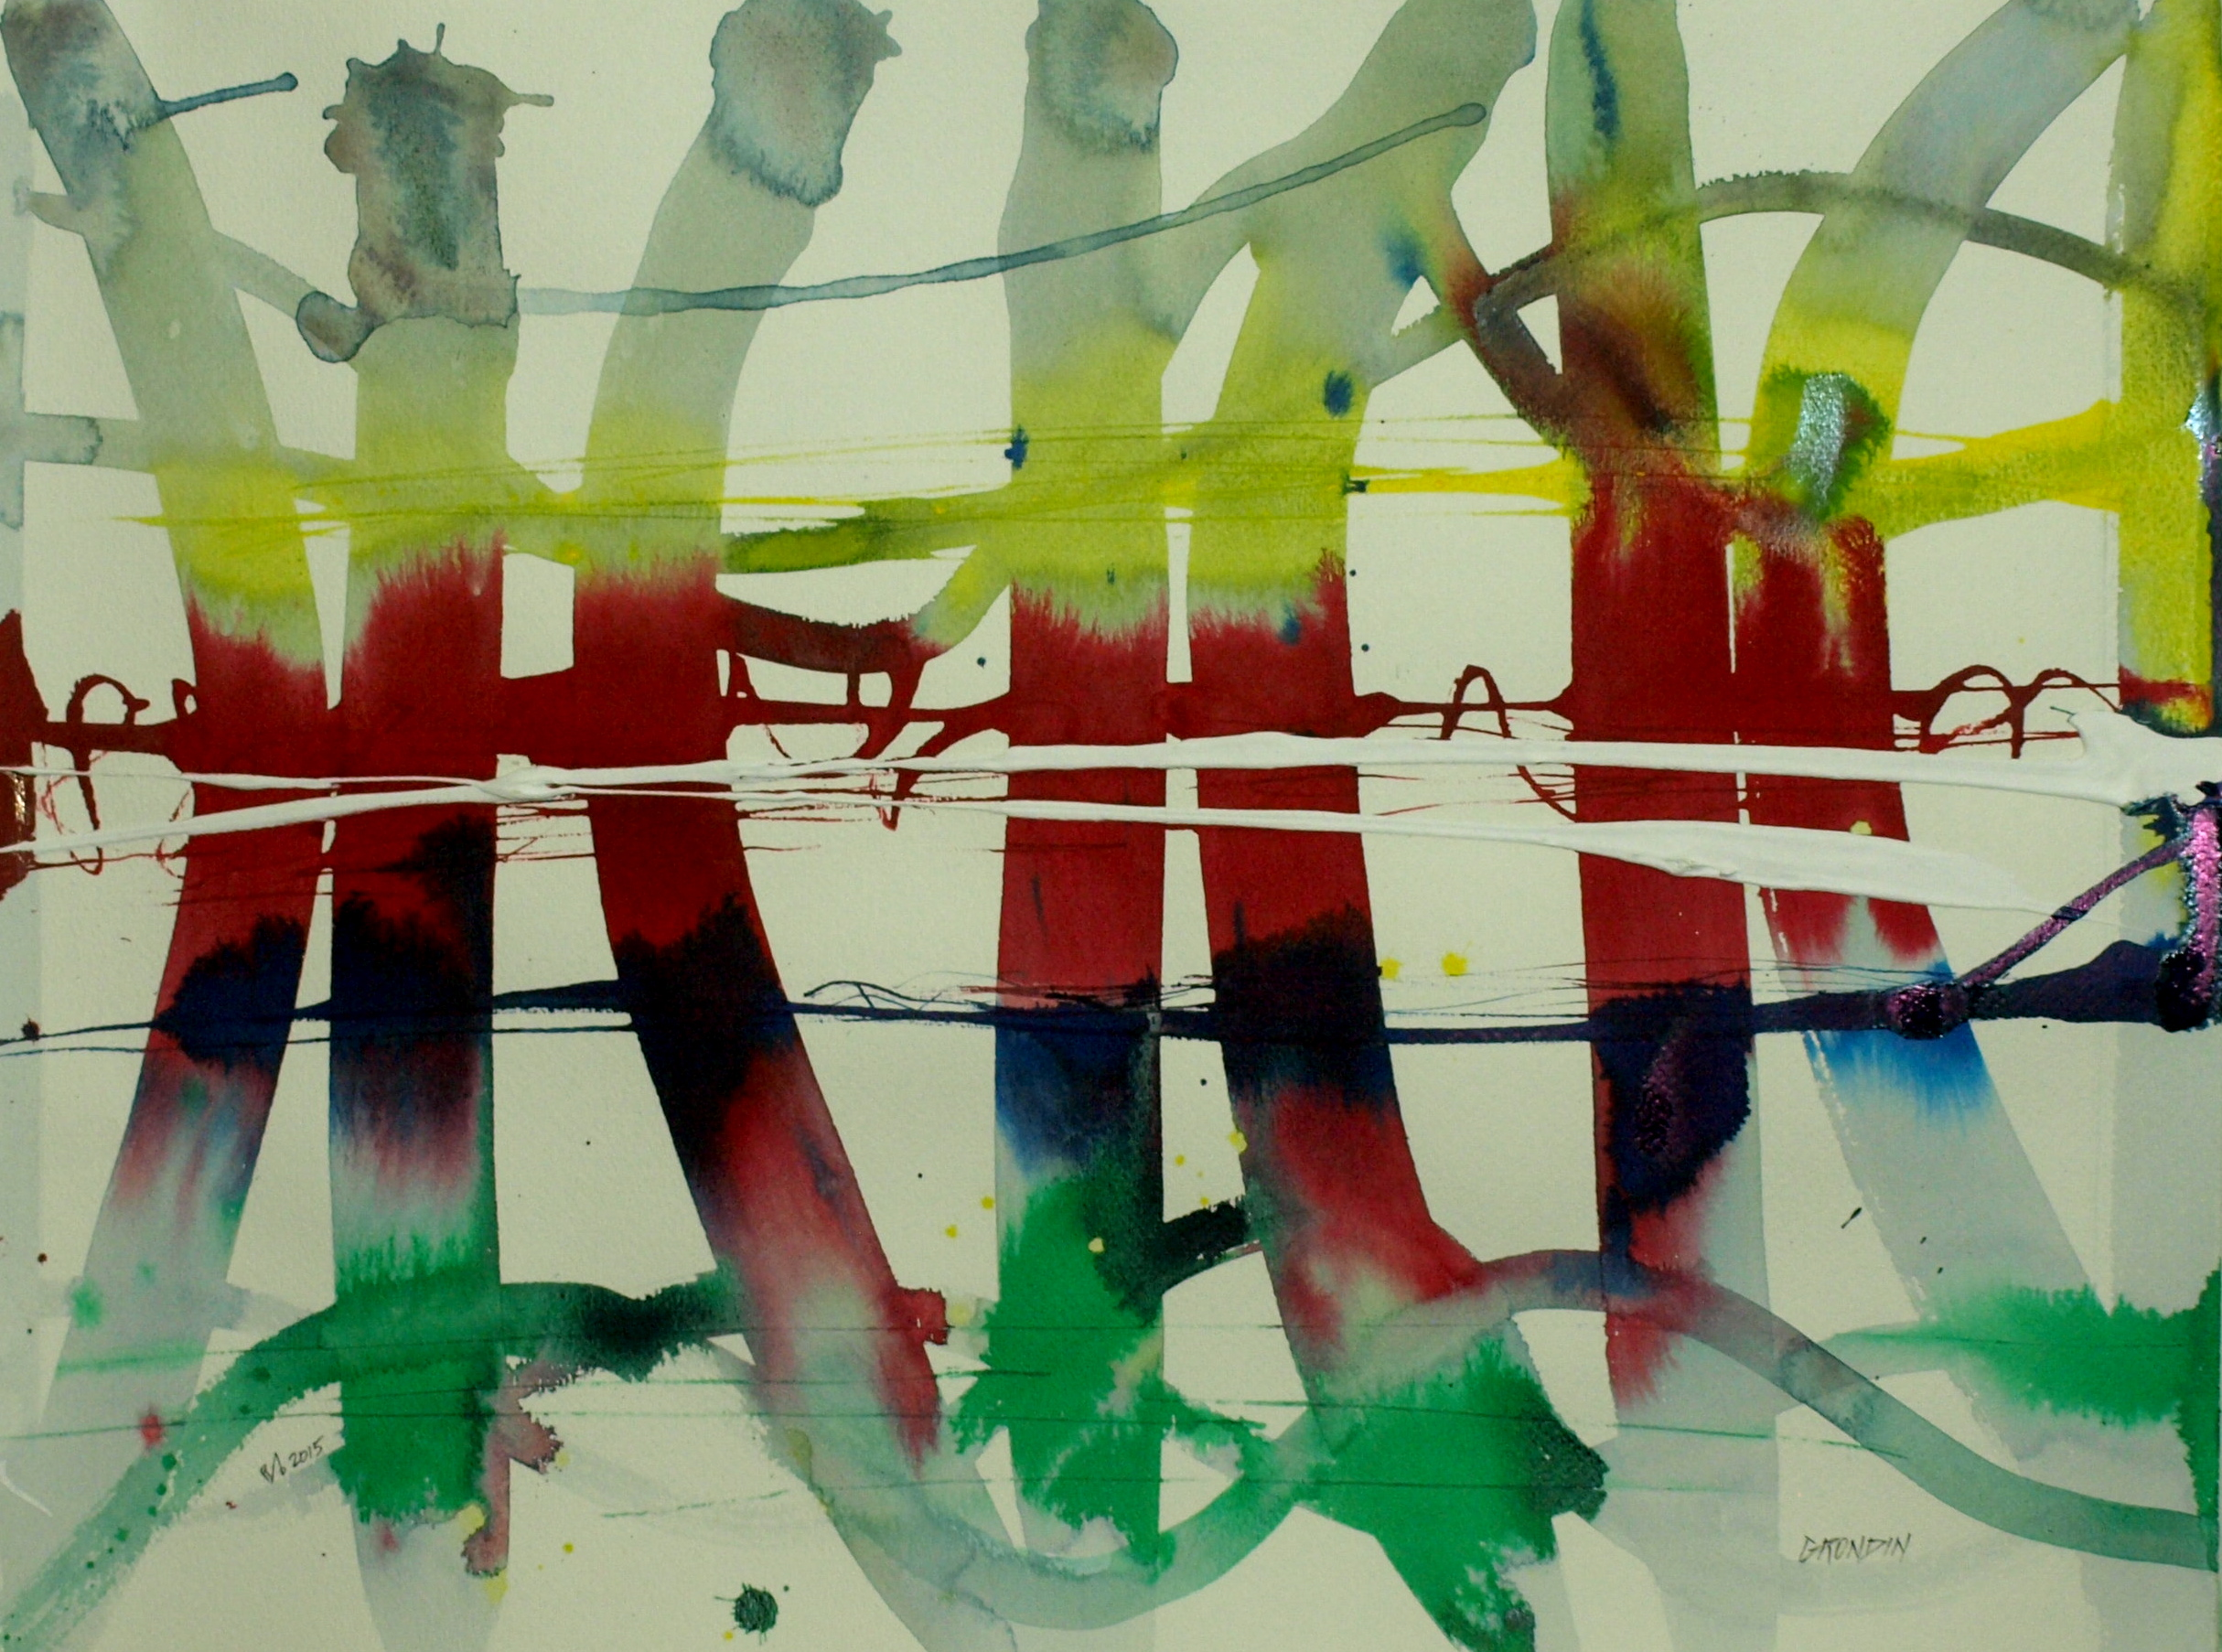 Bamboo Pattern #2 18x24in on watercolour Paper $700 framed $400 not framed